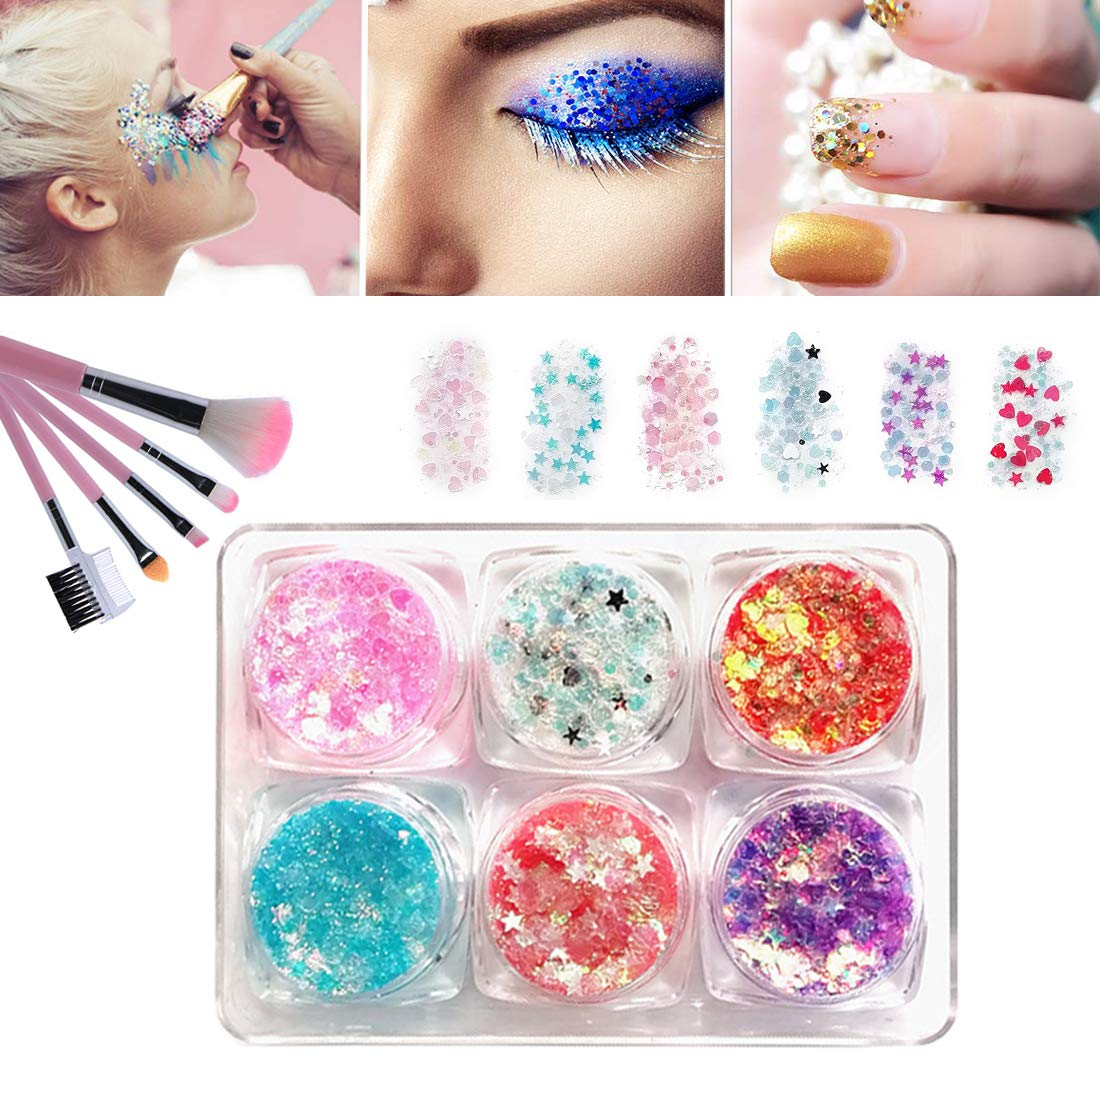 Body Glitter Tattoo Kits Gel Nail Polish for Kids Girls,Face Body Painting Glitter Self-adhesive Glitter Gel with 5 Brushes, Cosmetic Chunky Glitter Sequins for Face Nail Body and Hair